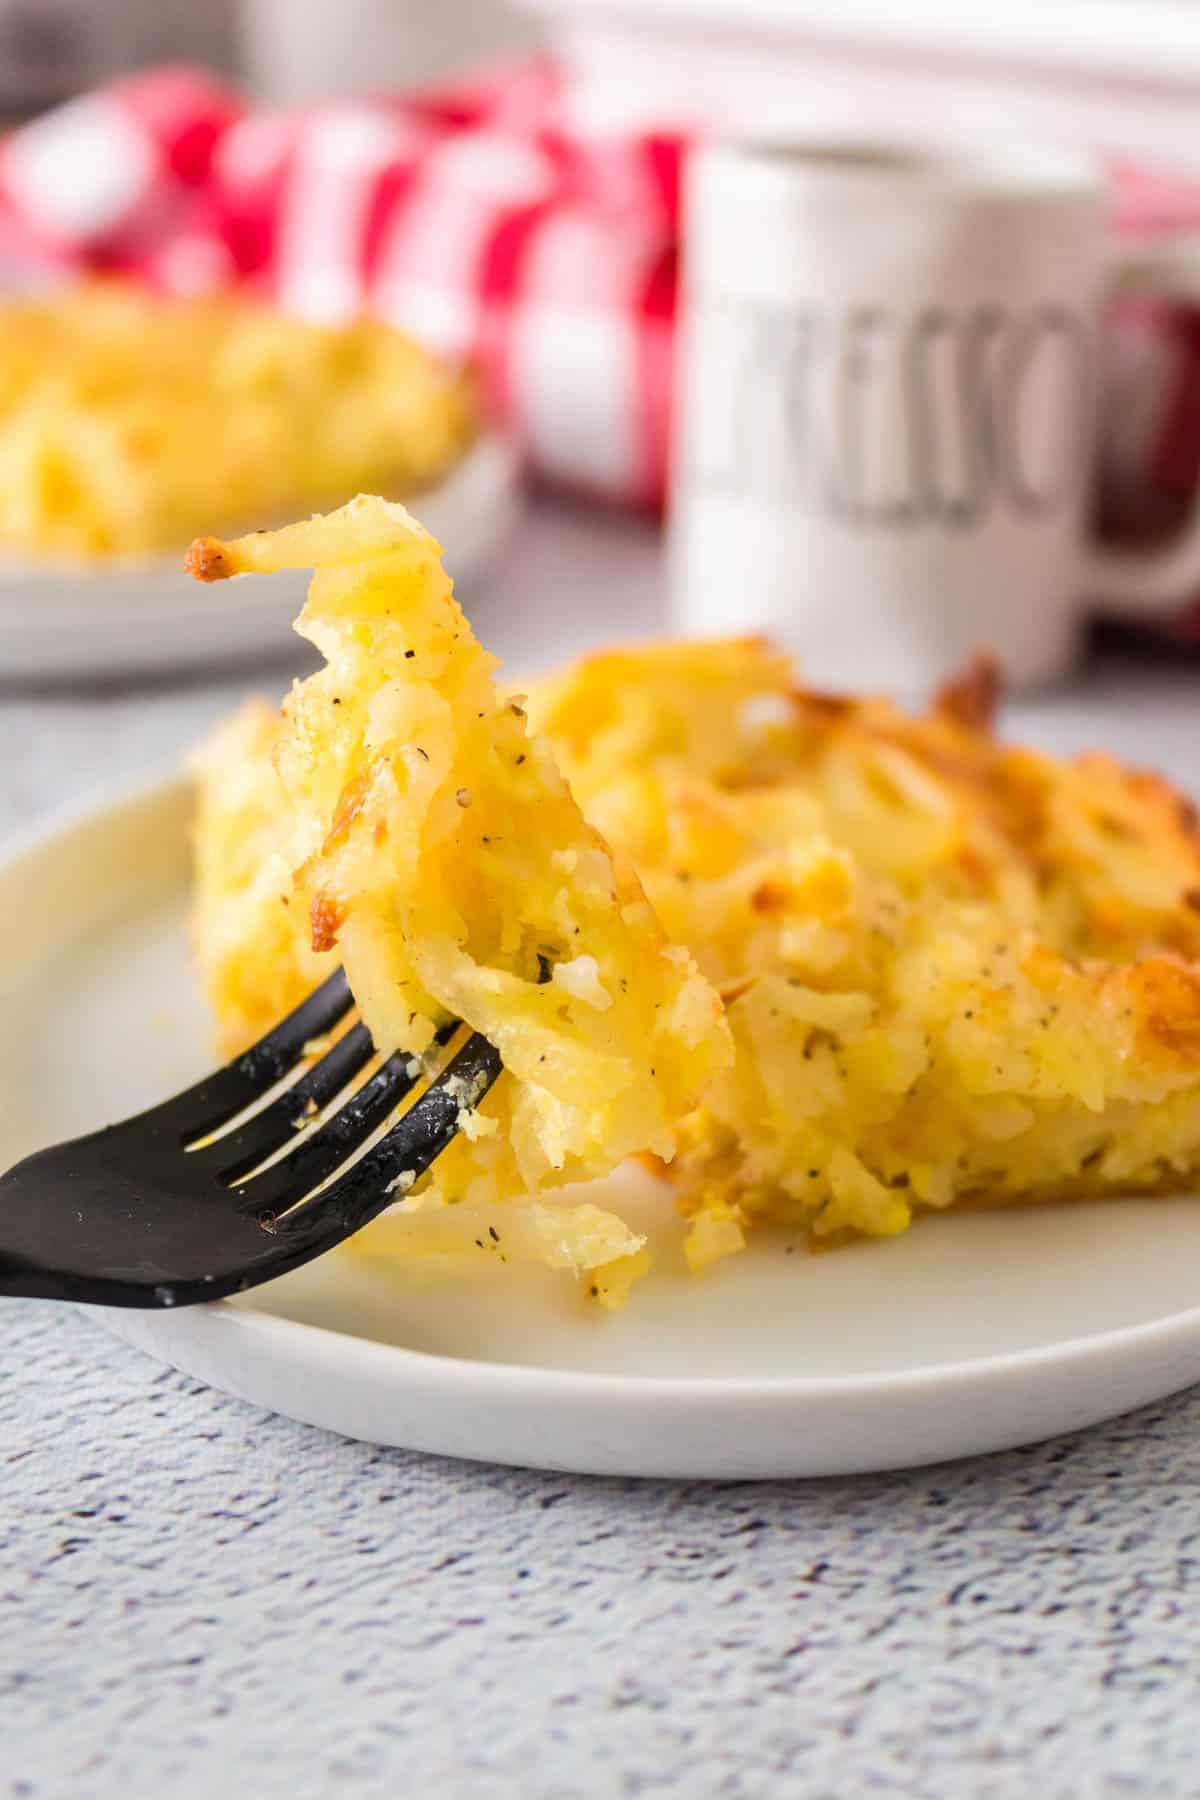 fork picking up a piece of the potato casserole on a plate